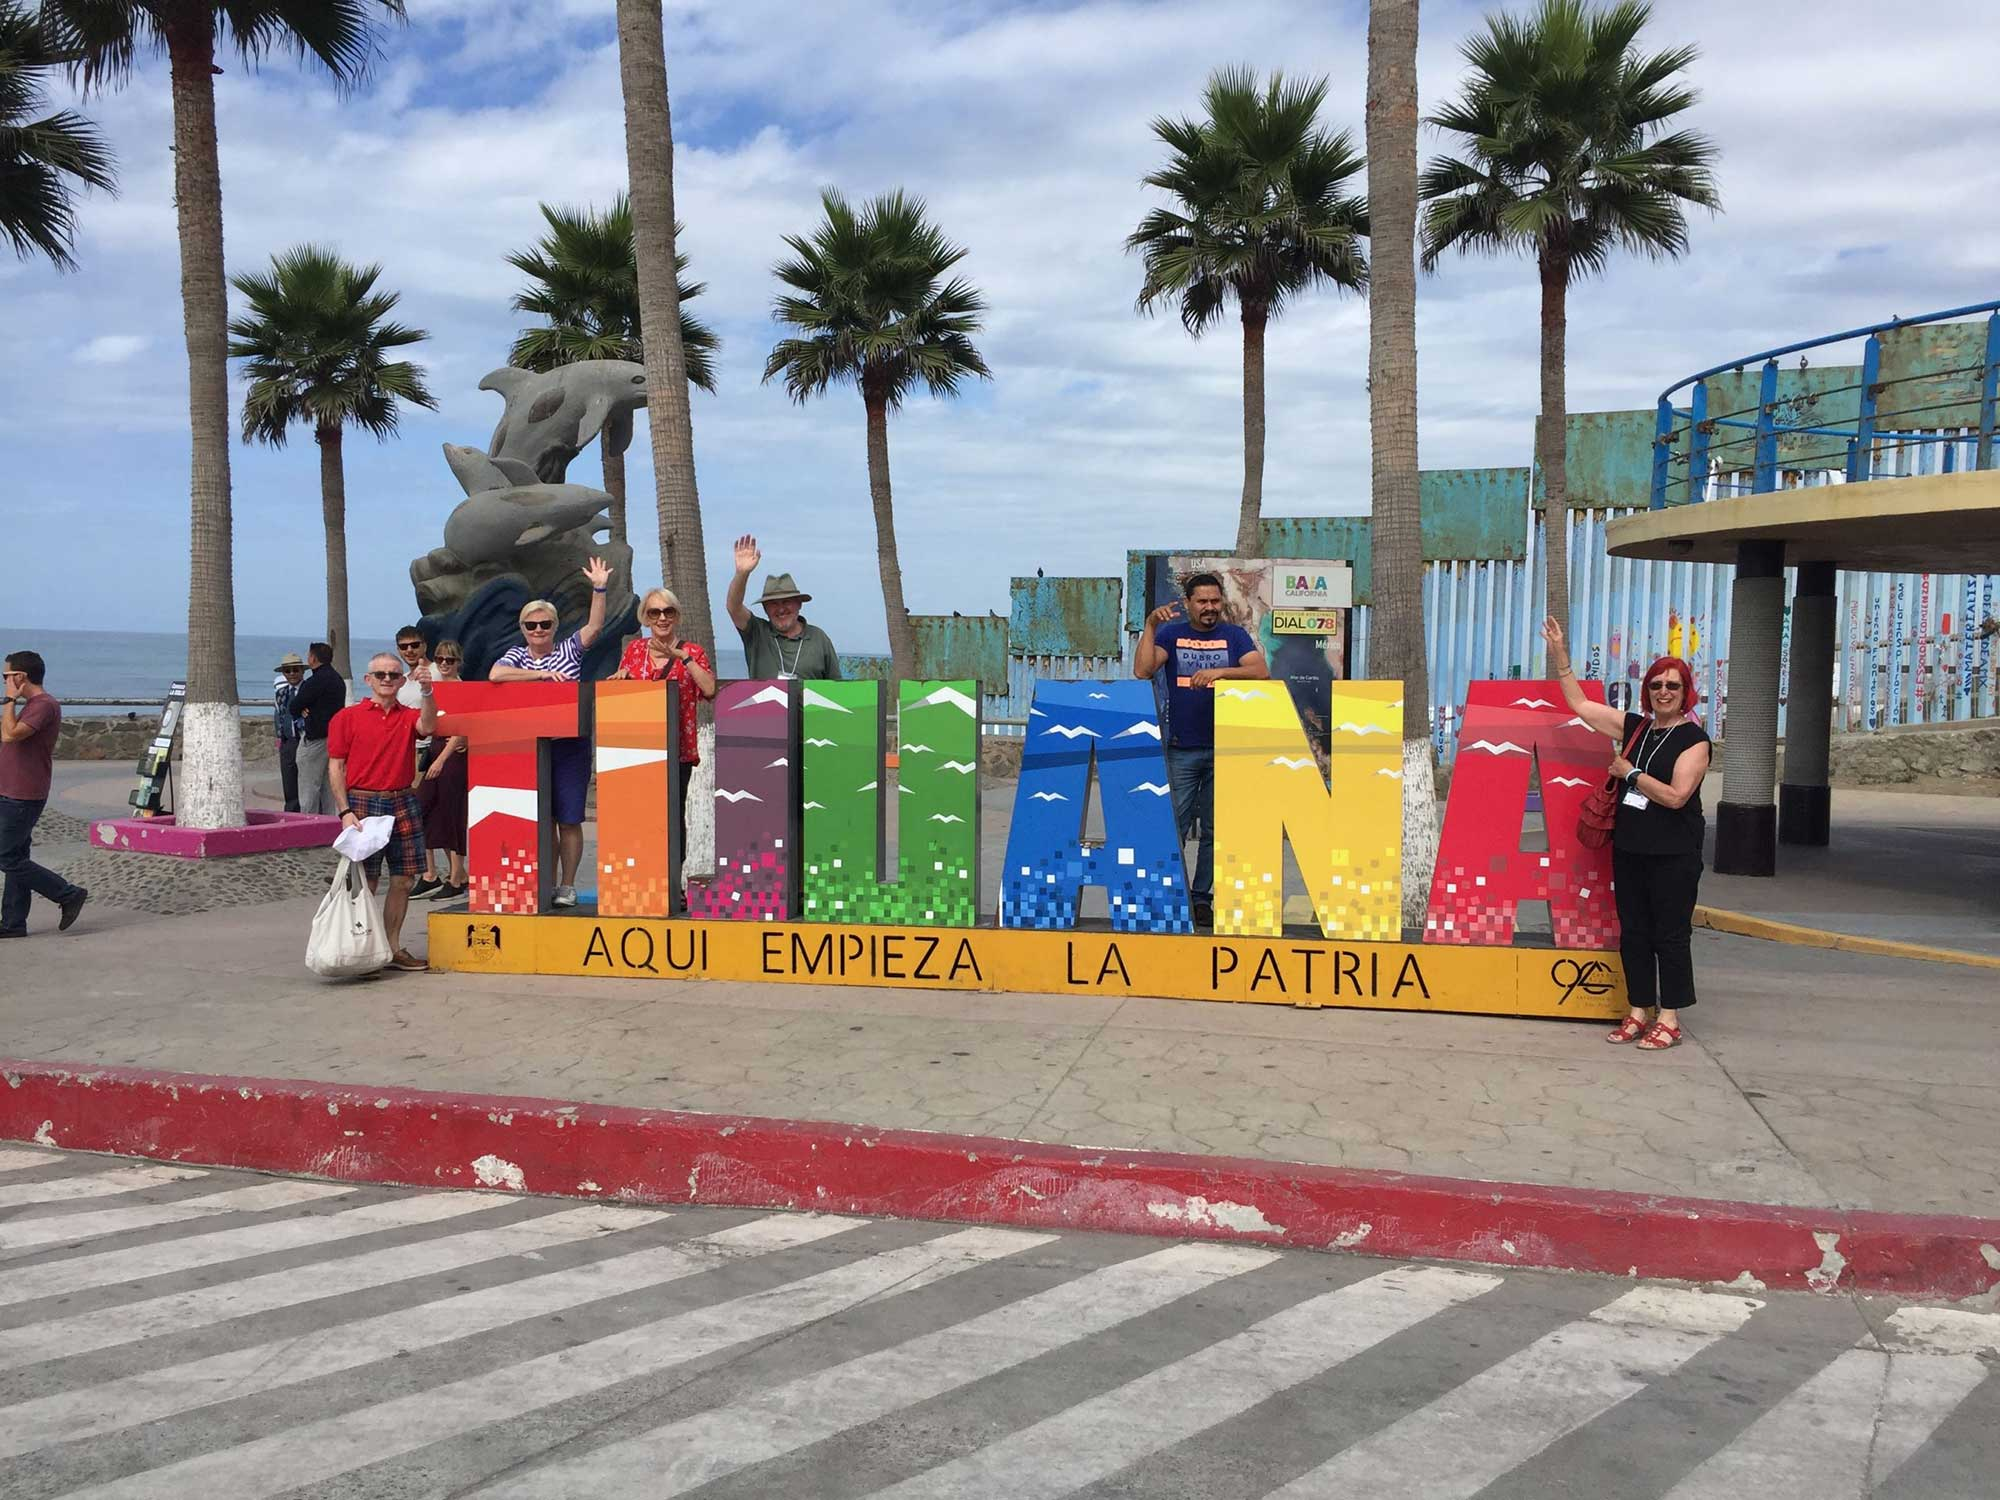 Tijuana walking tour, Tijuana tour